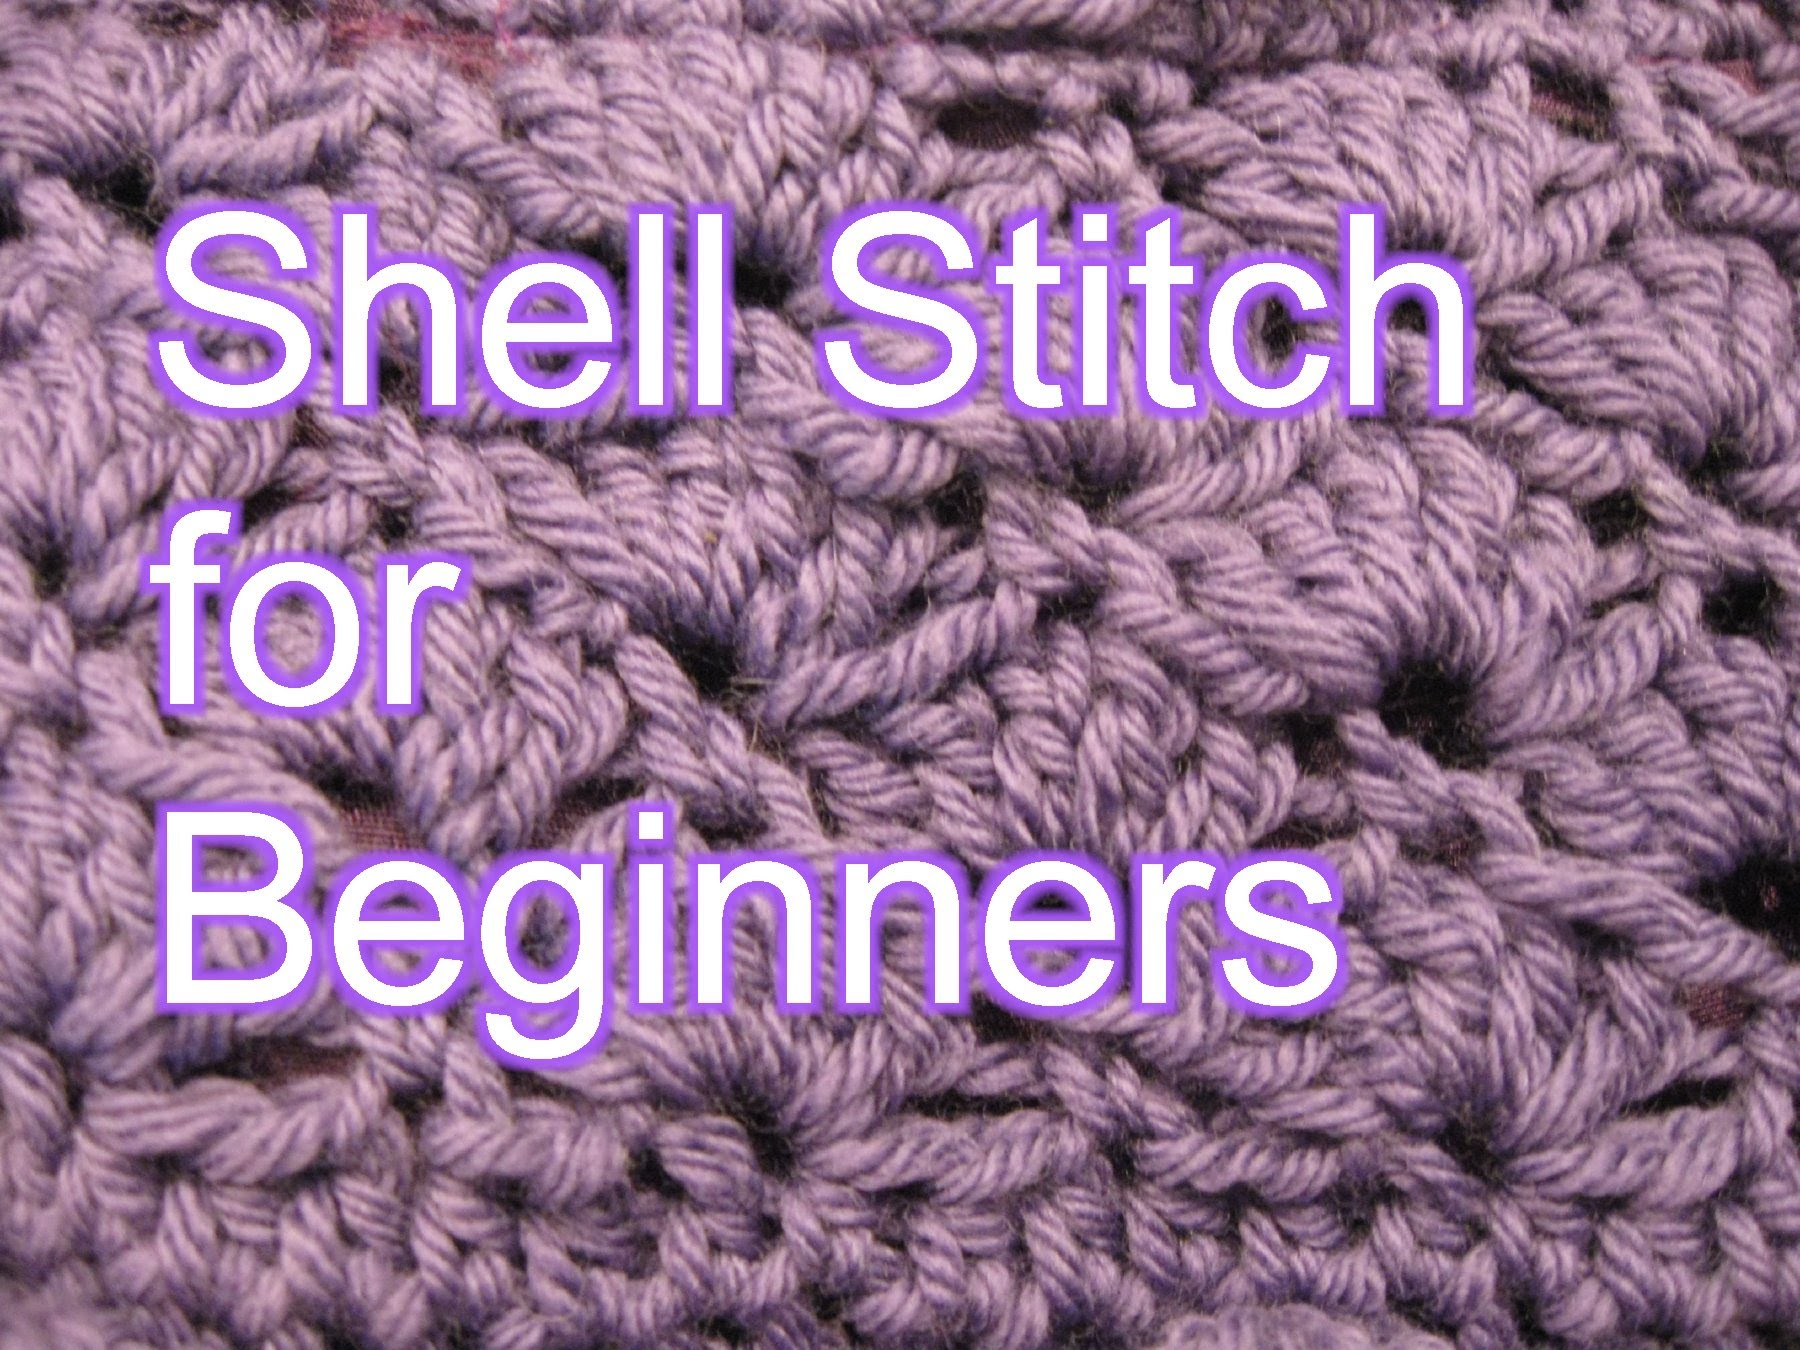 Crochet Websites For Beginners : ... Stitch: Crochet Shell Stitch For Beginners - Knit And Crochet Daily